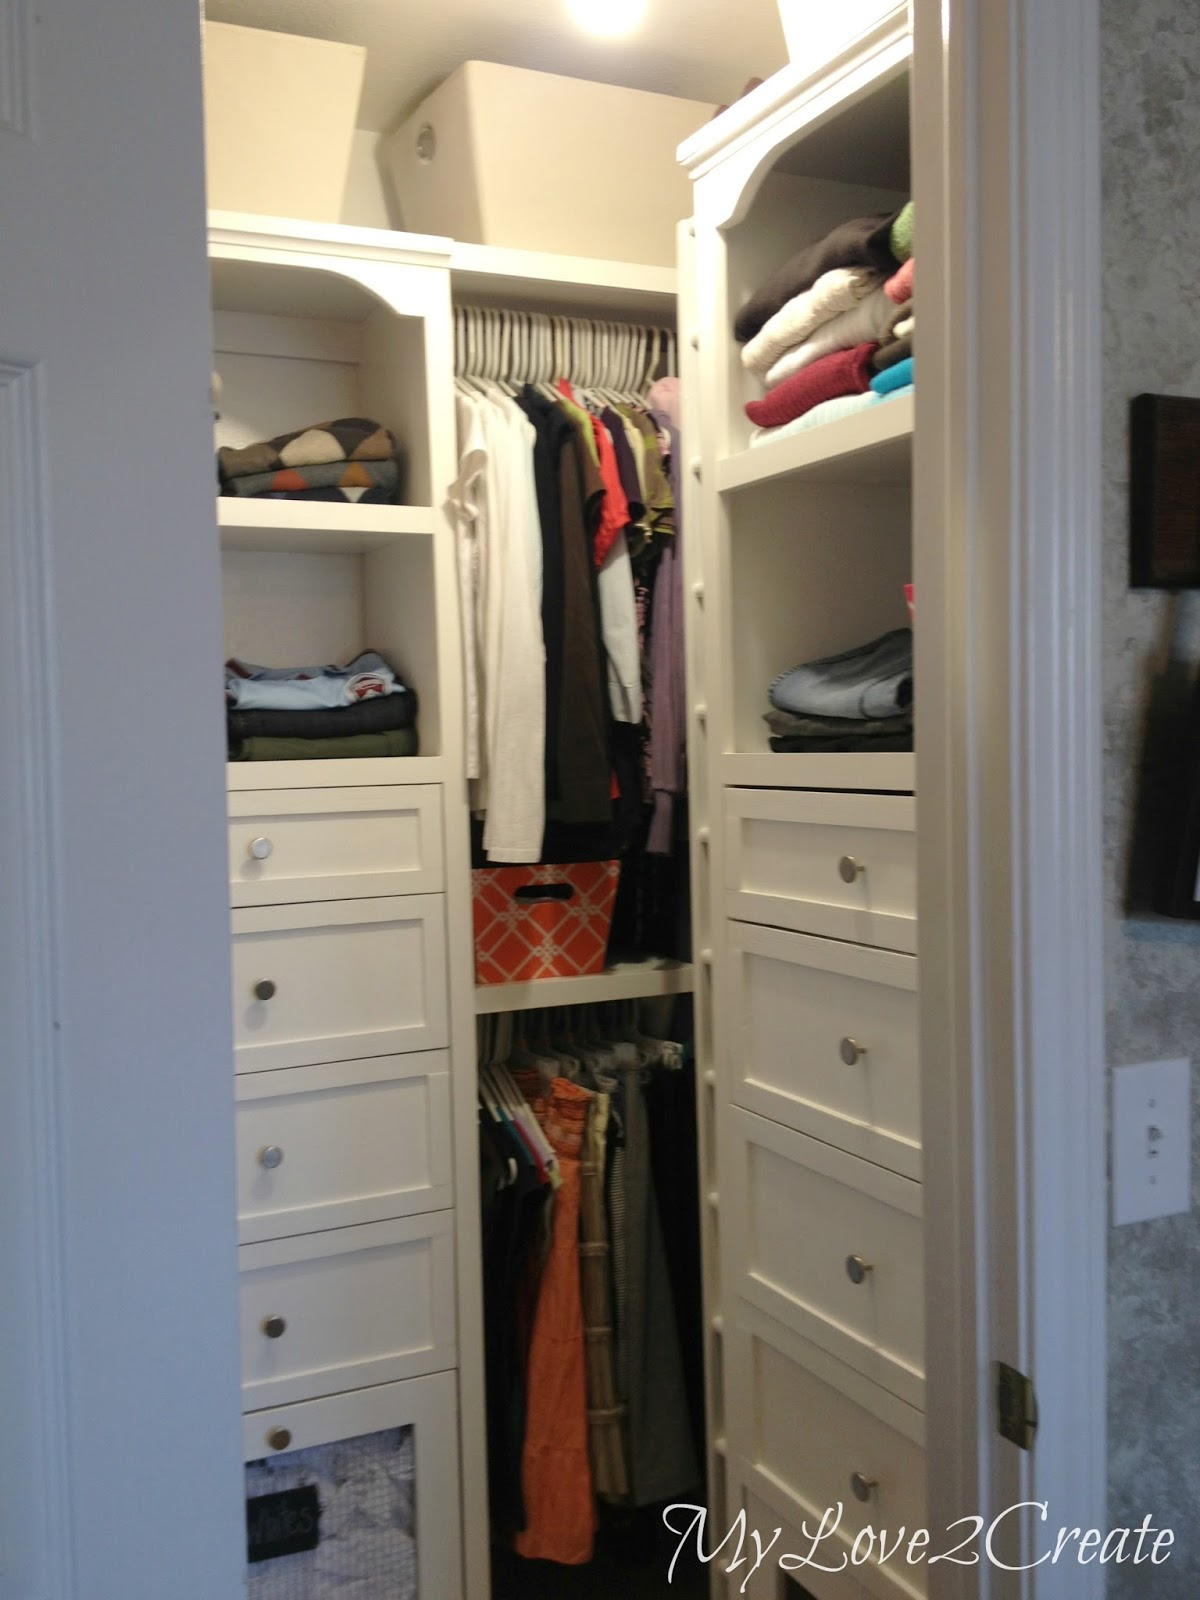 summer martha that organized you going tower until closets stewart now out t drawers units with the best organization beautiful don dsc depot closet prices brings miss from home august mom is on s shelving event and